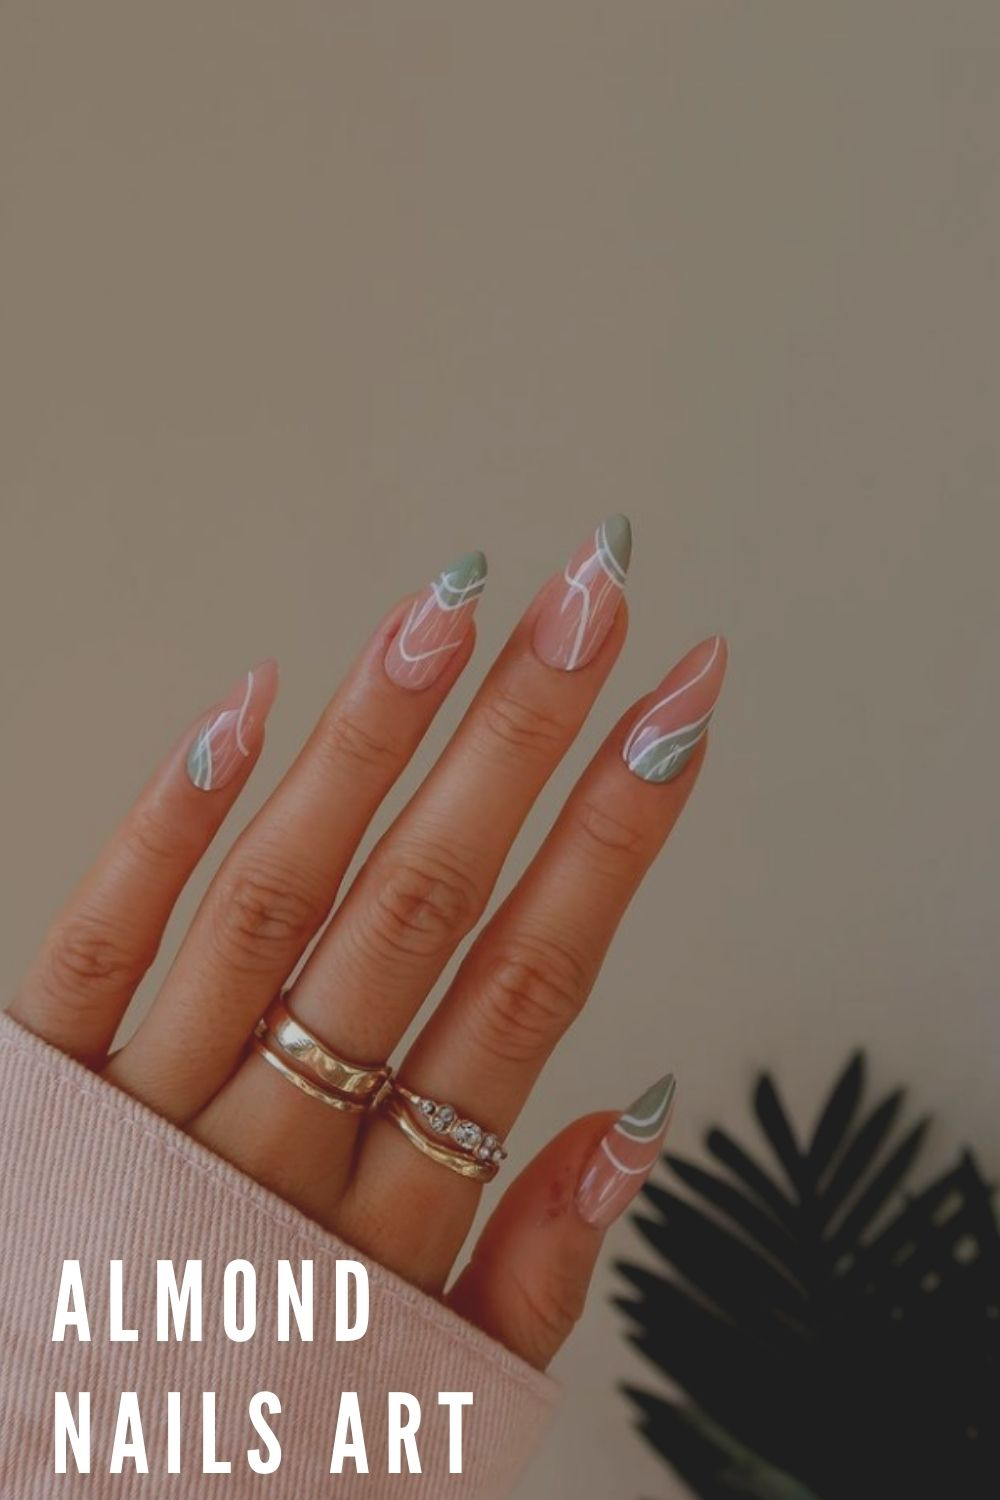 Light green and white, pink almond nail designs